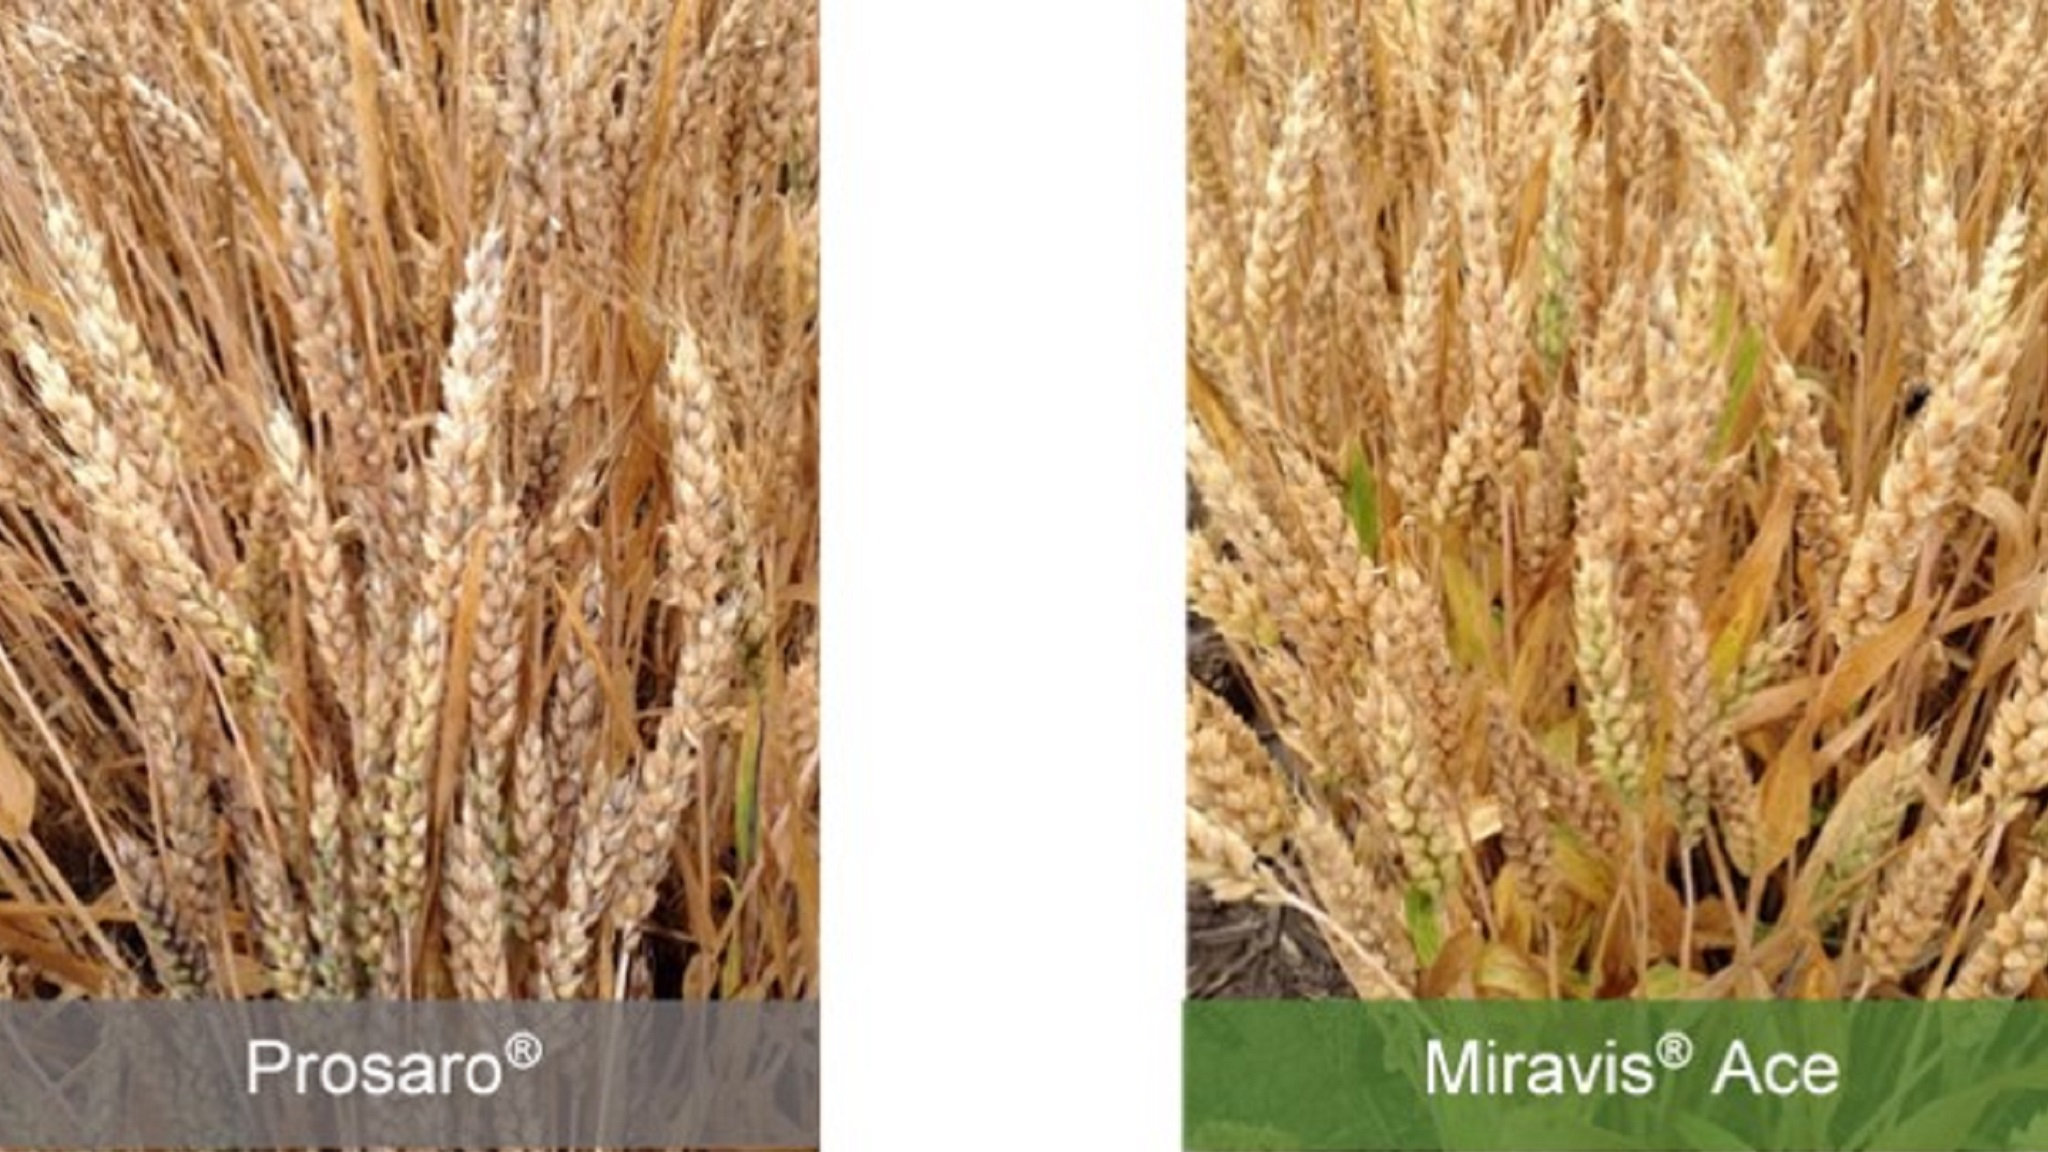 This agronomic image compares Prosaro and Miravis Ace